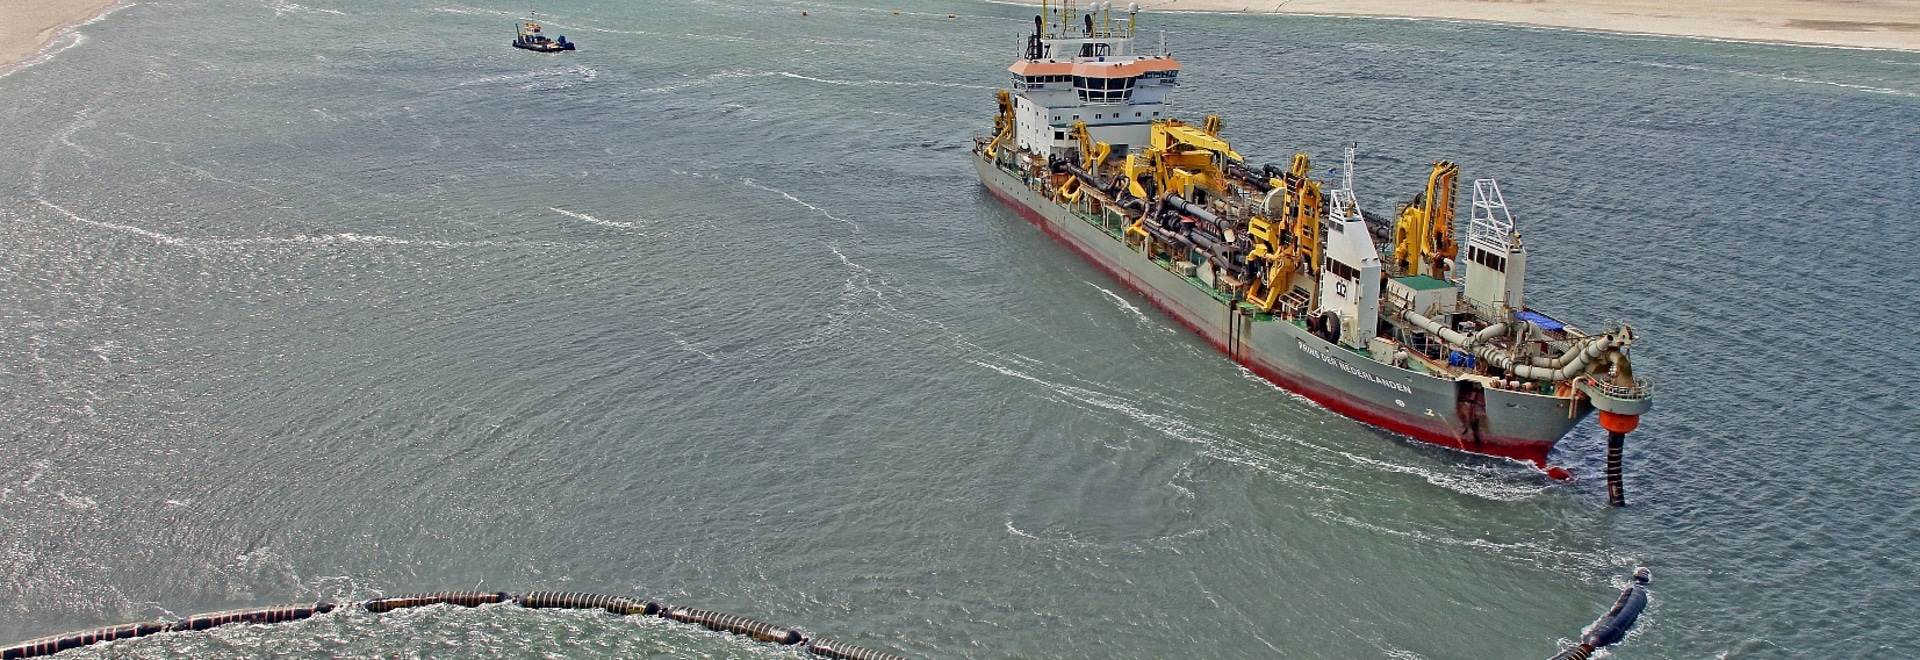 Global population growth ensures structural demand for Boskalis' land reclamation and infrastructure activities